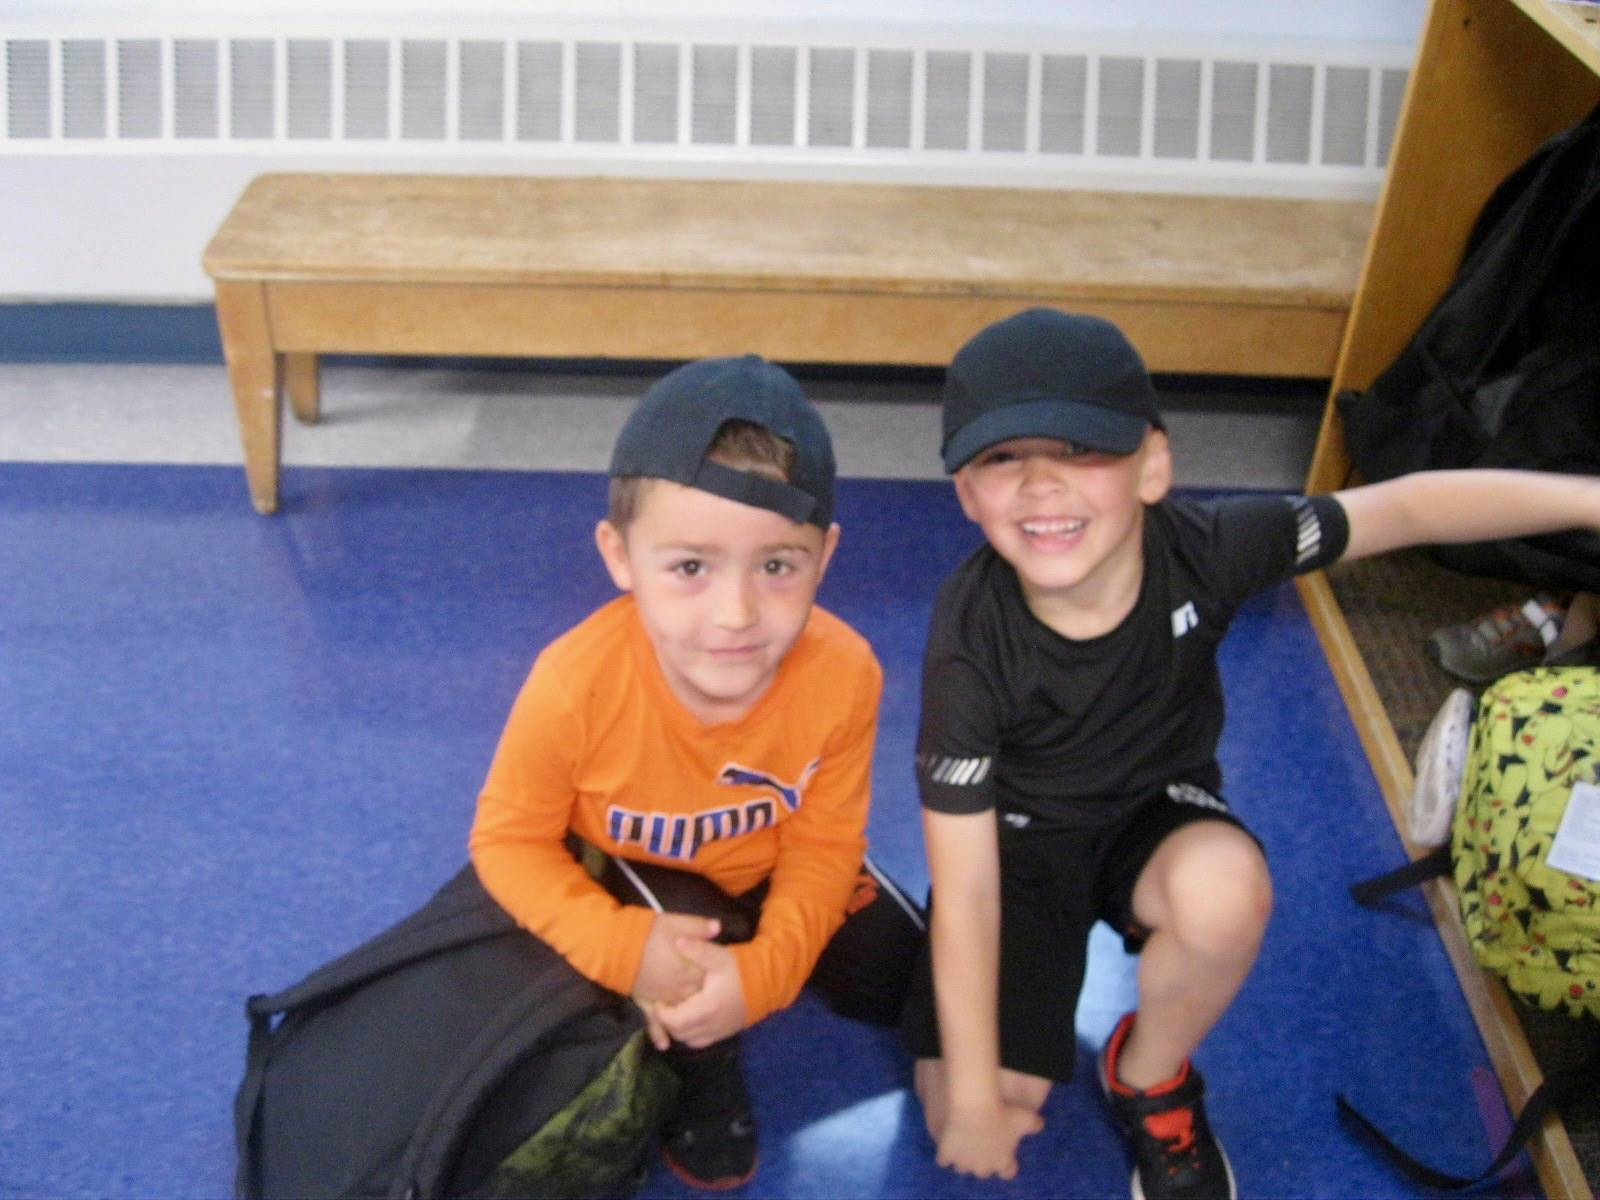 2 students with hats